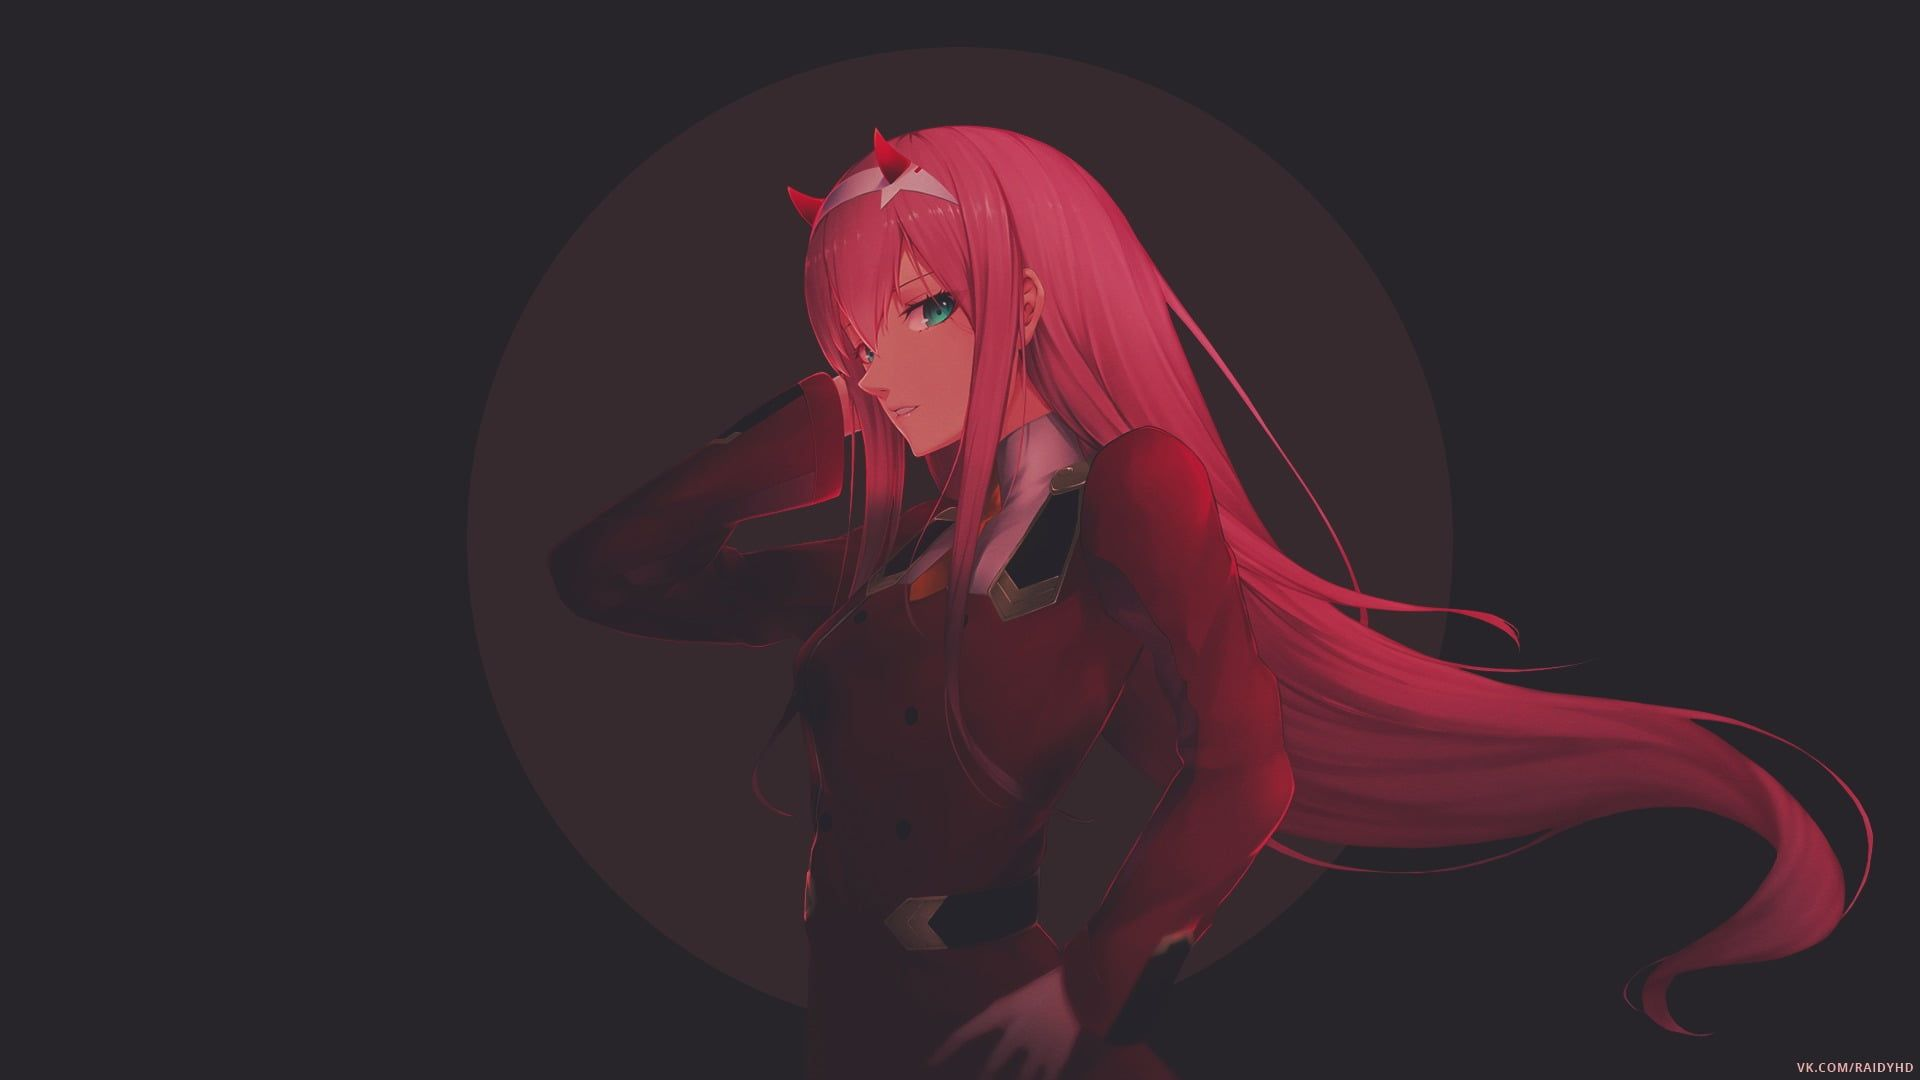 Pin On Darling Of The Franxx